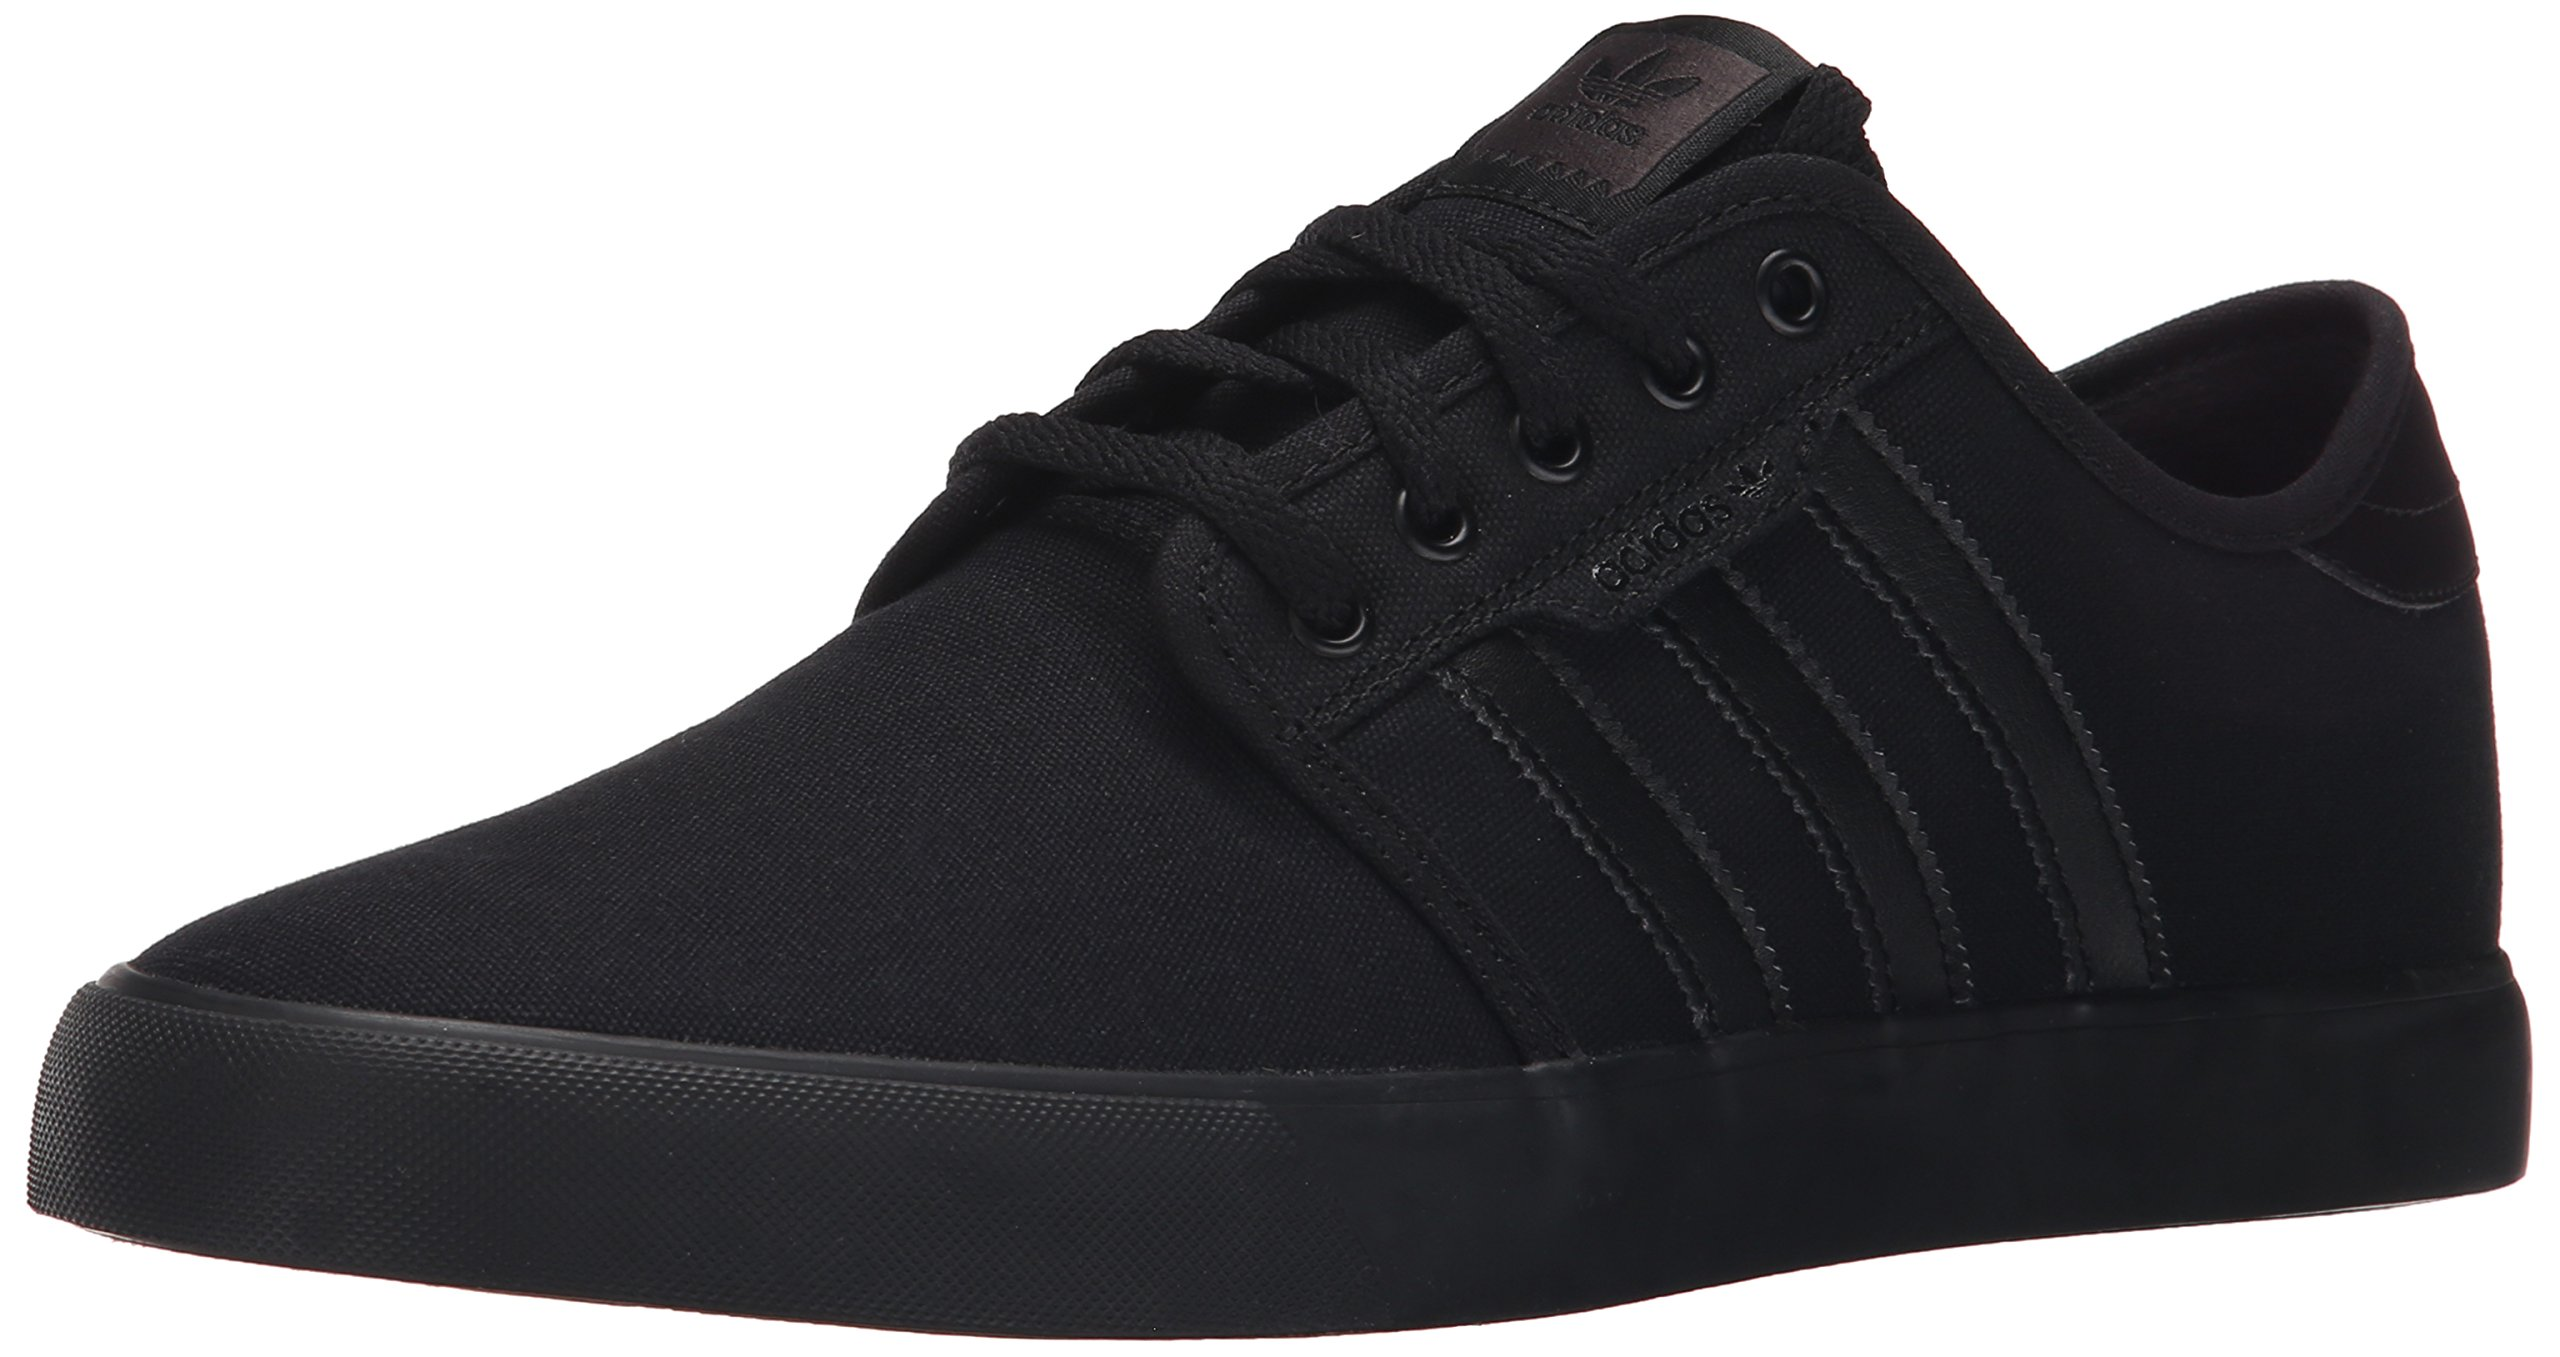 adidas Originals Men's Seeley Running Shoe, Black, 12.5 M US by adidas Originals